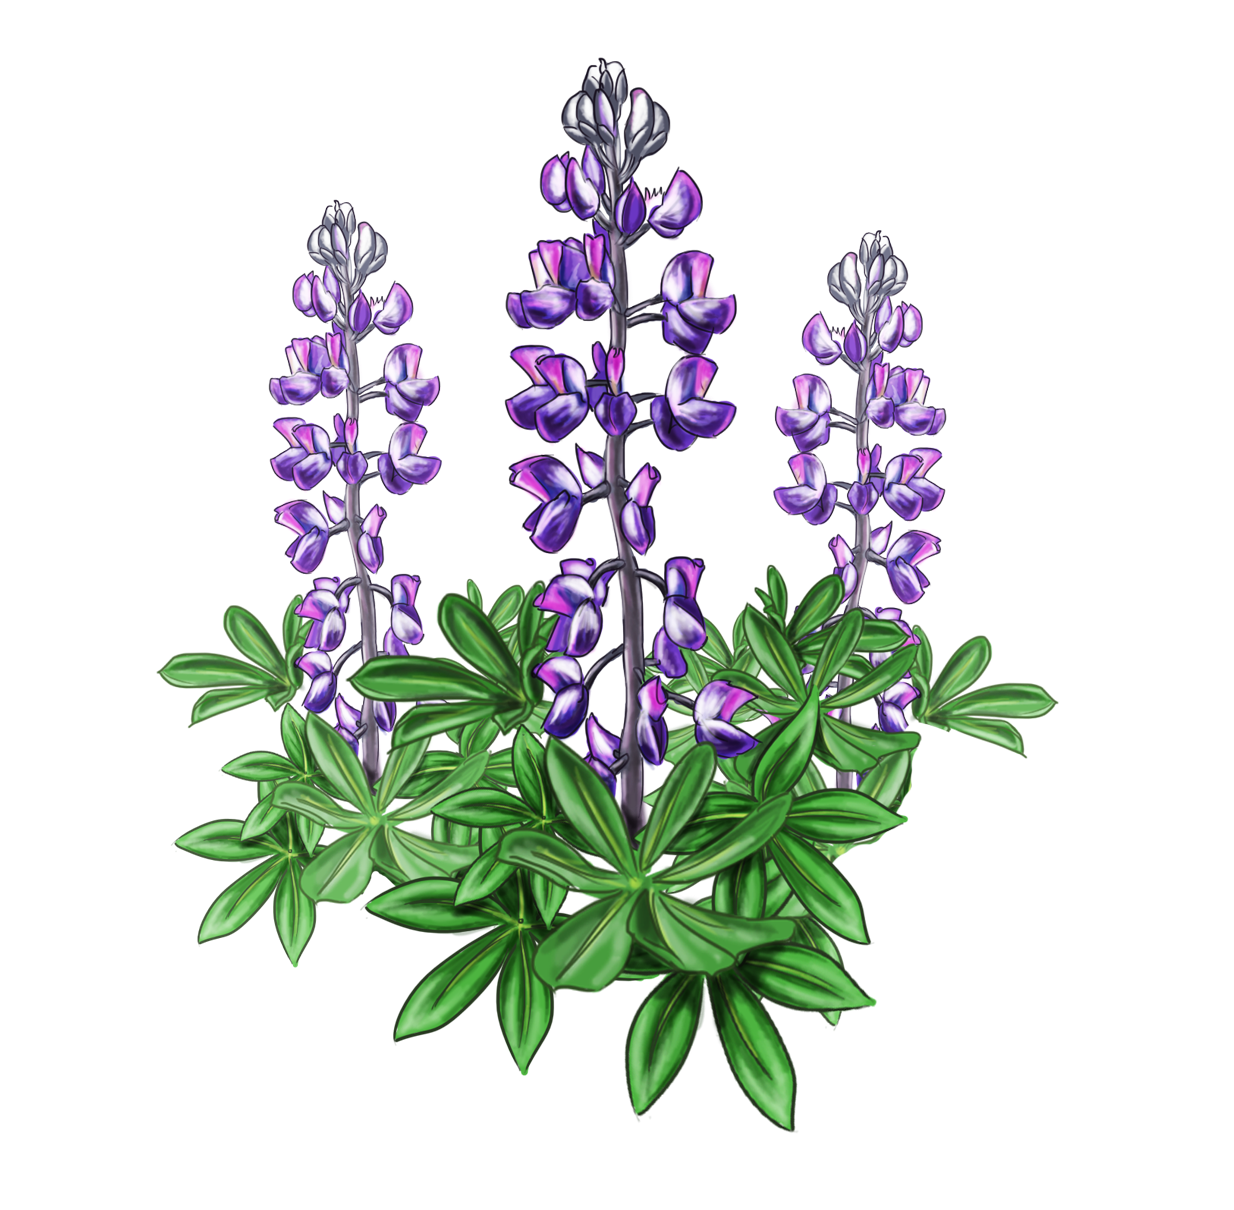 clip transparent stock Lupine bluebonnet alaska plant. Bluebonnets drawing flower